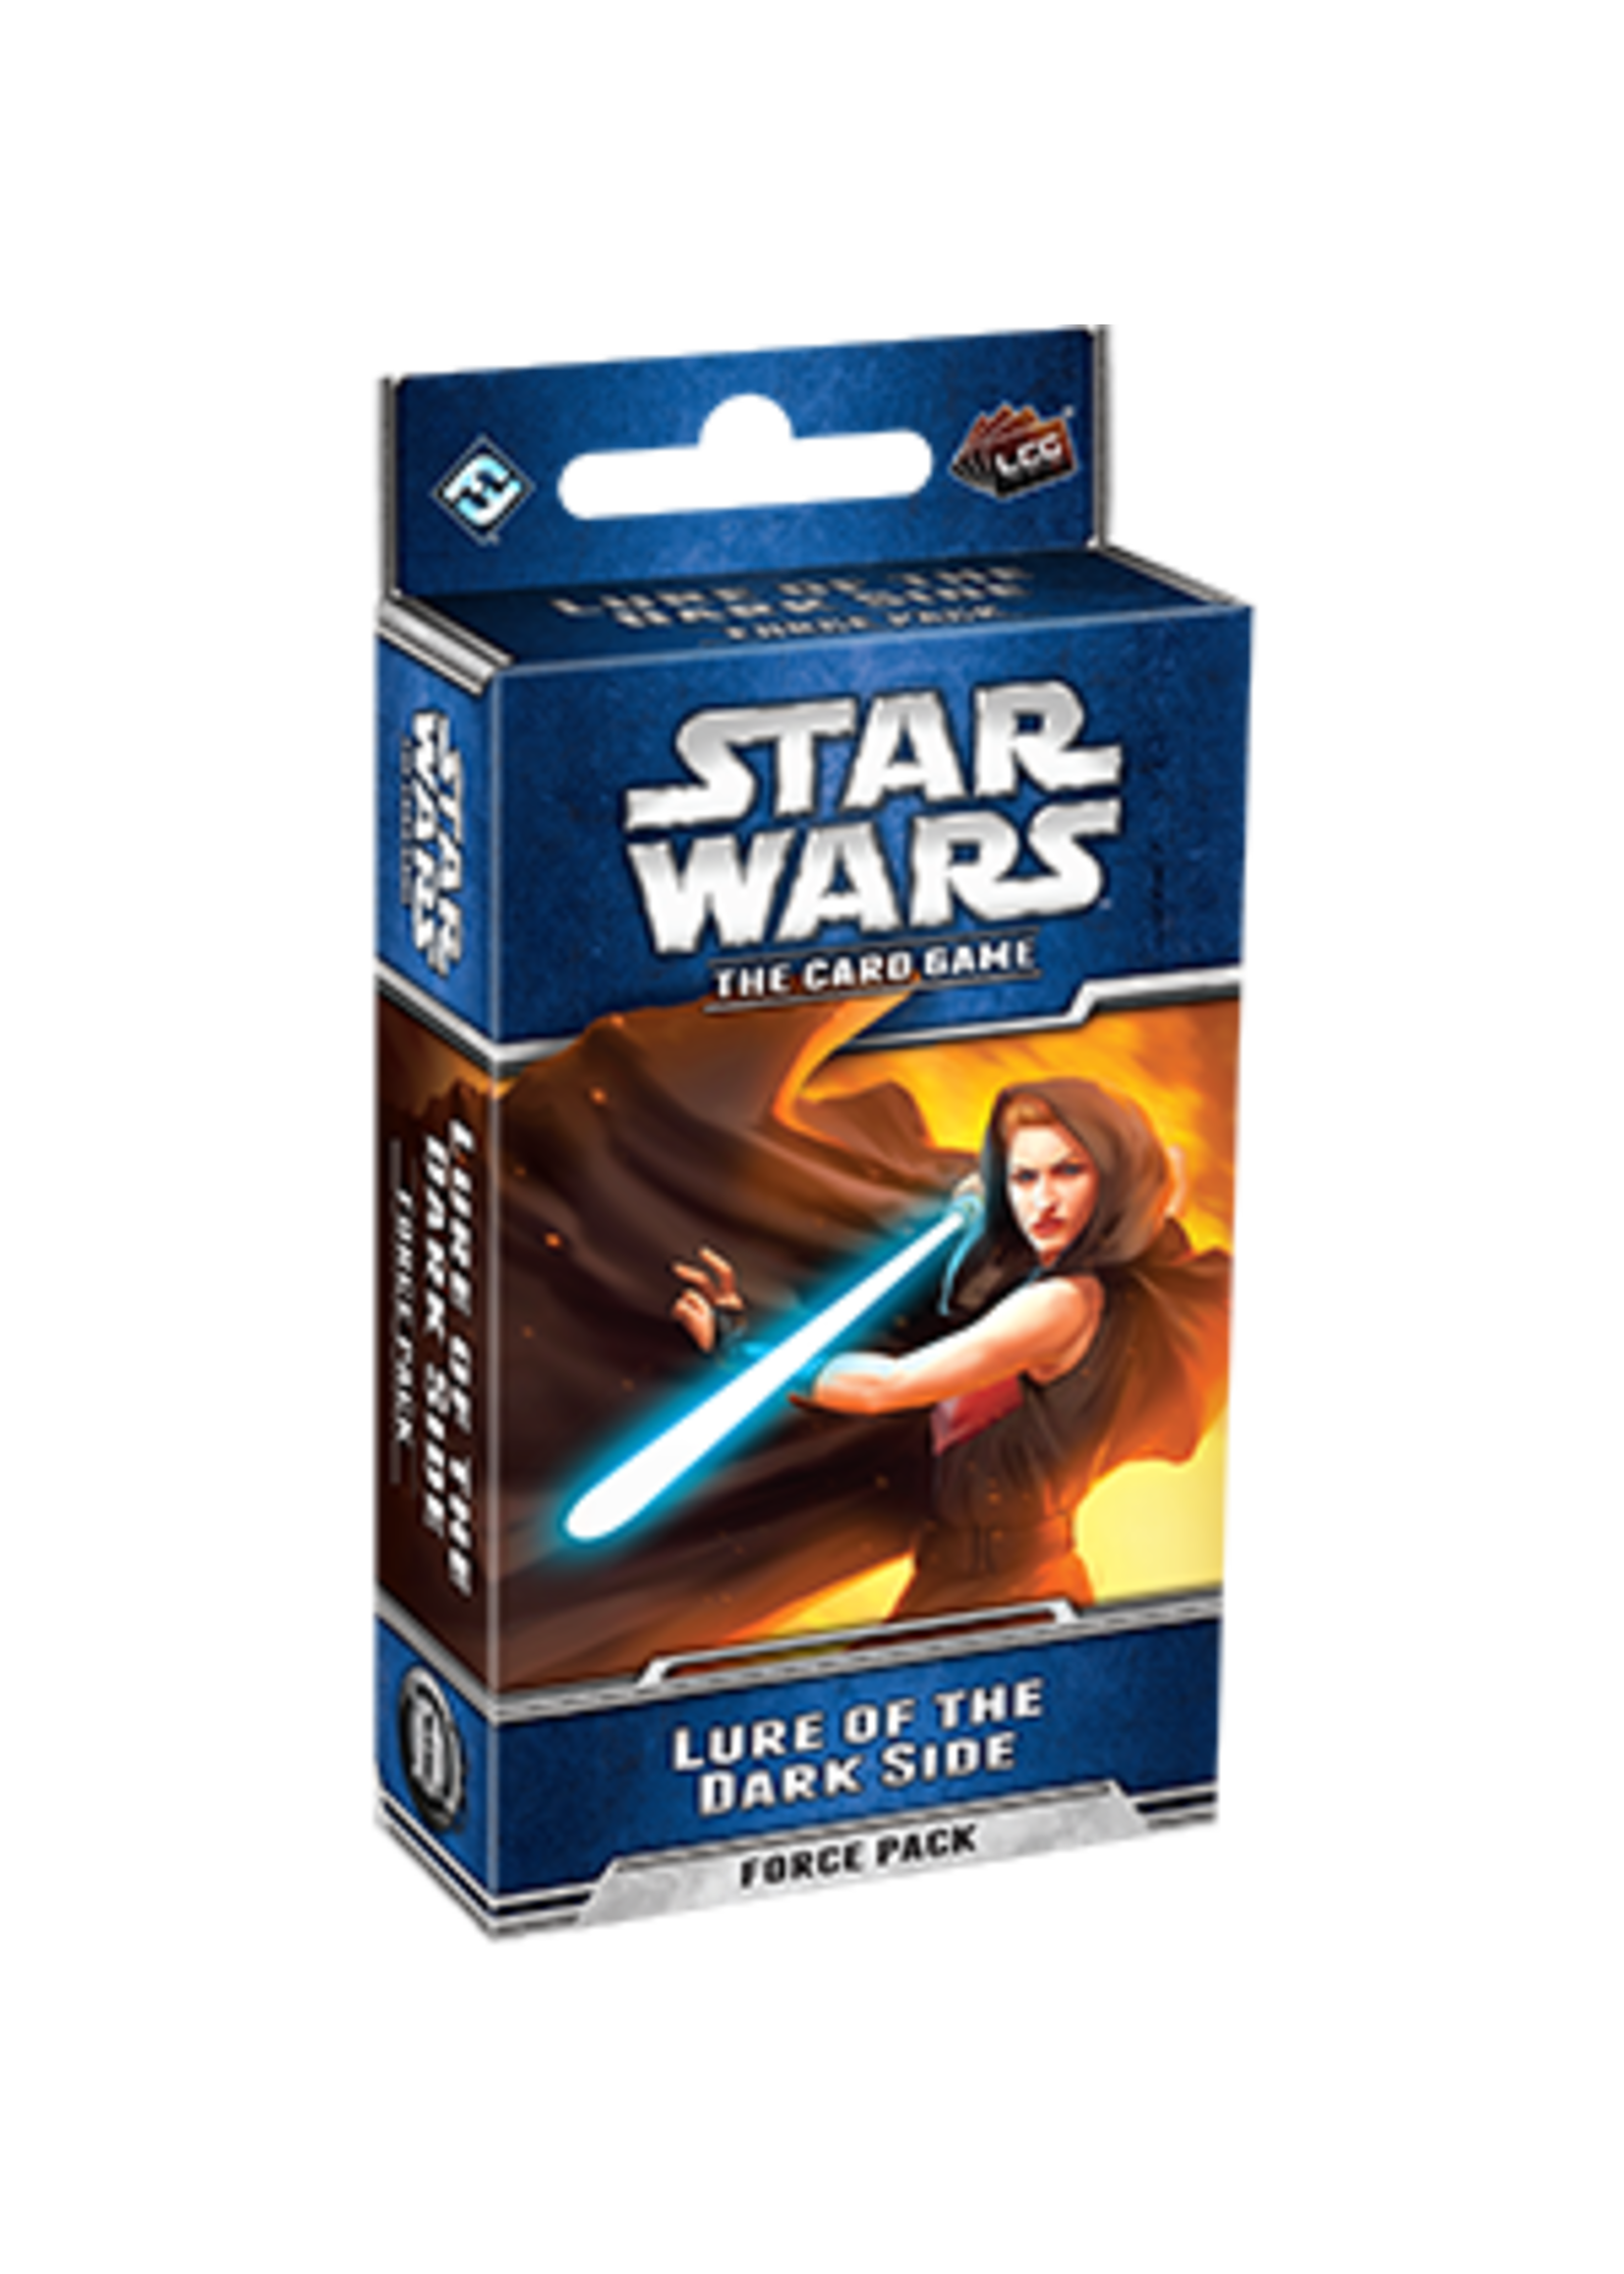 Star Wars LCG: Lure of the Dark Side Force Pack